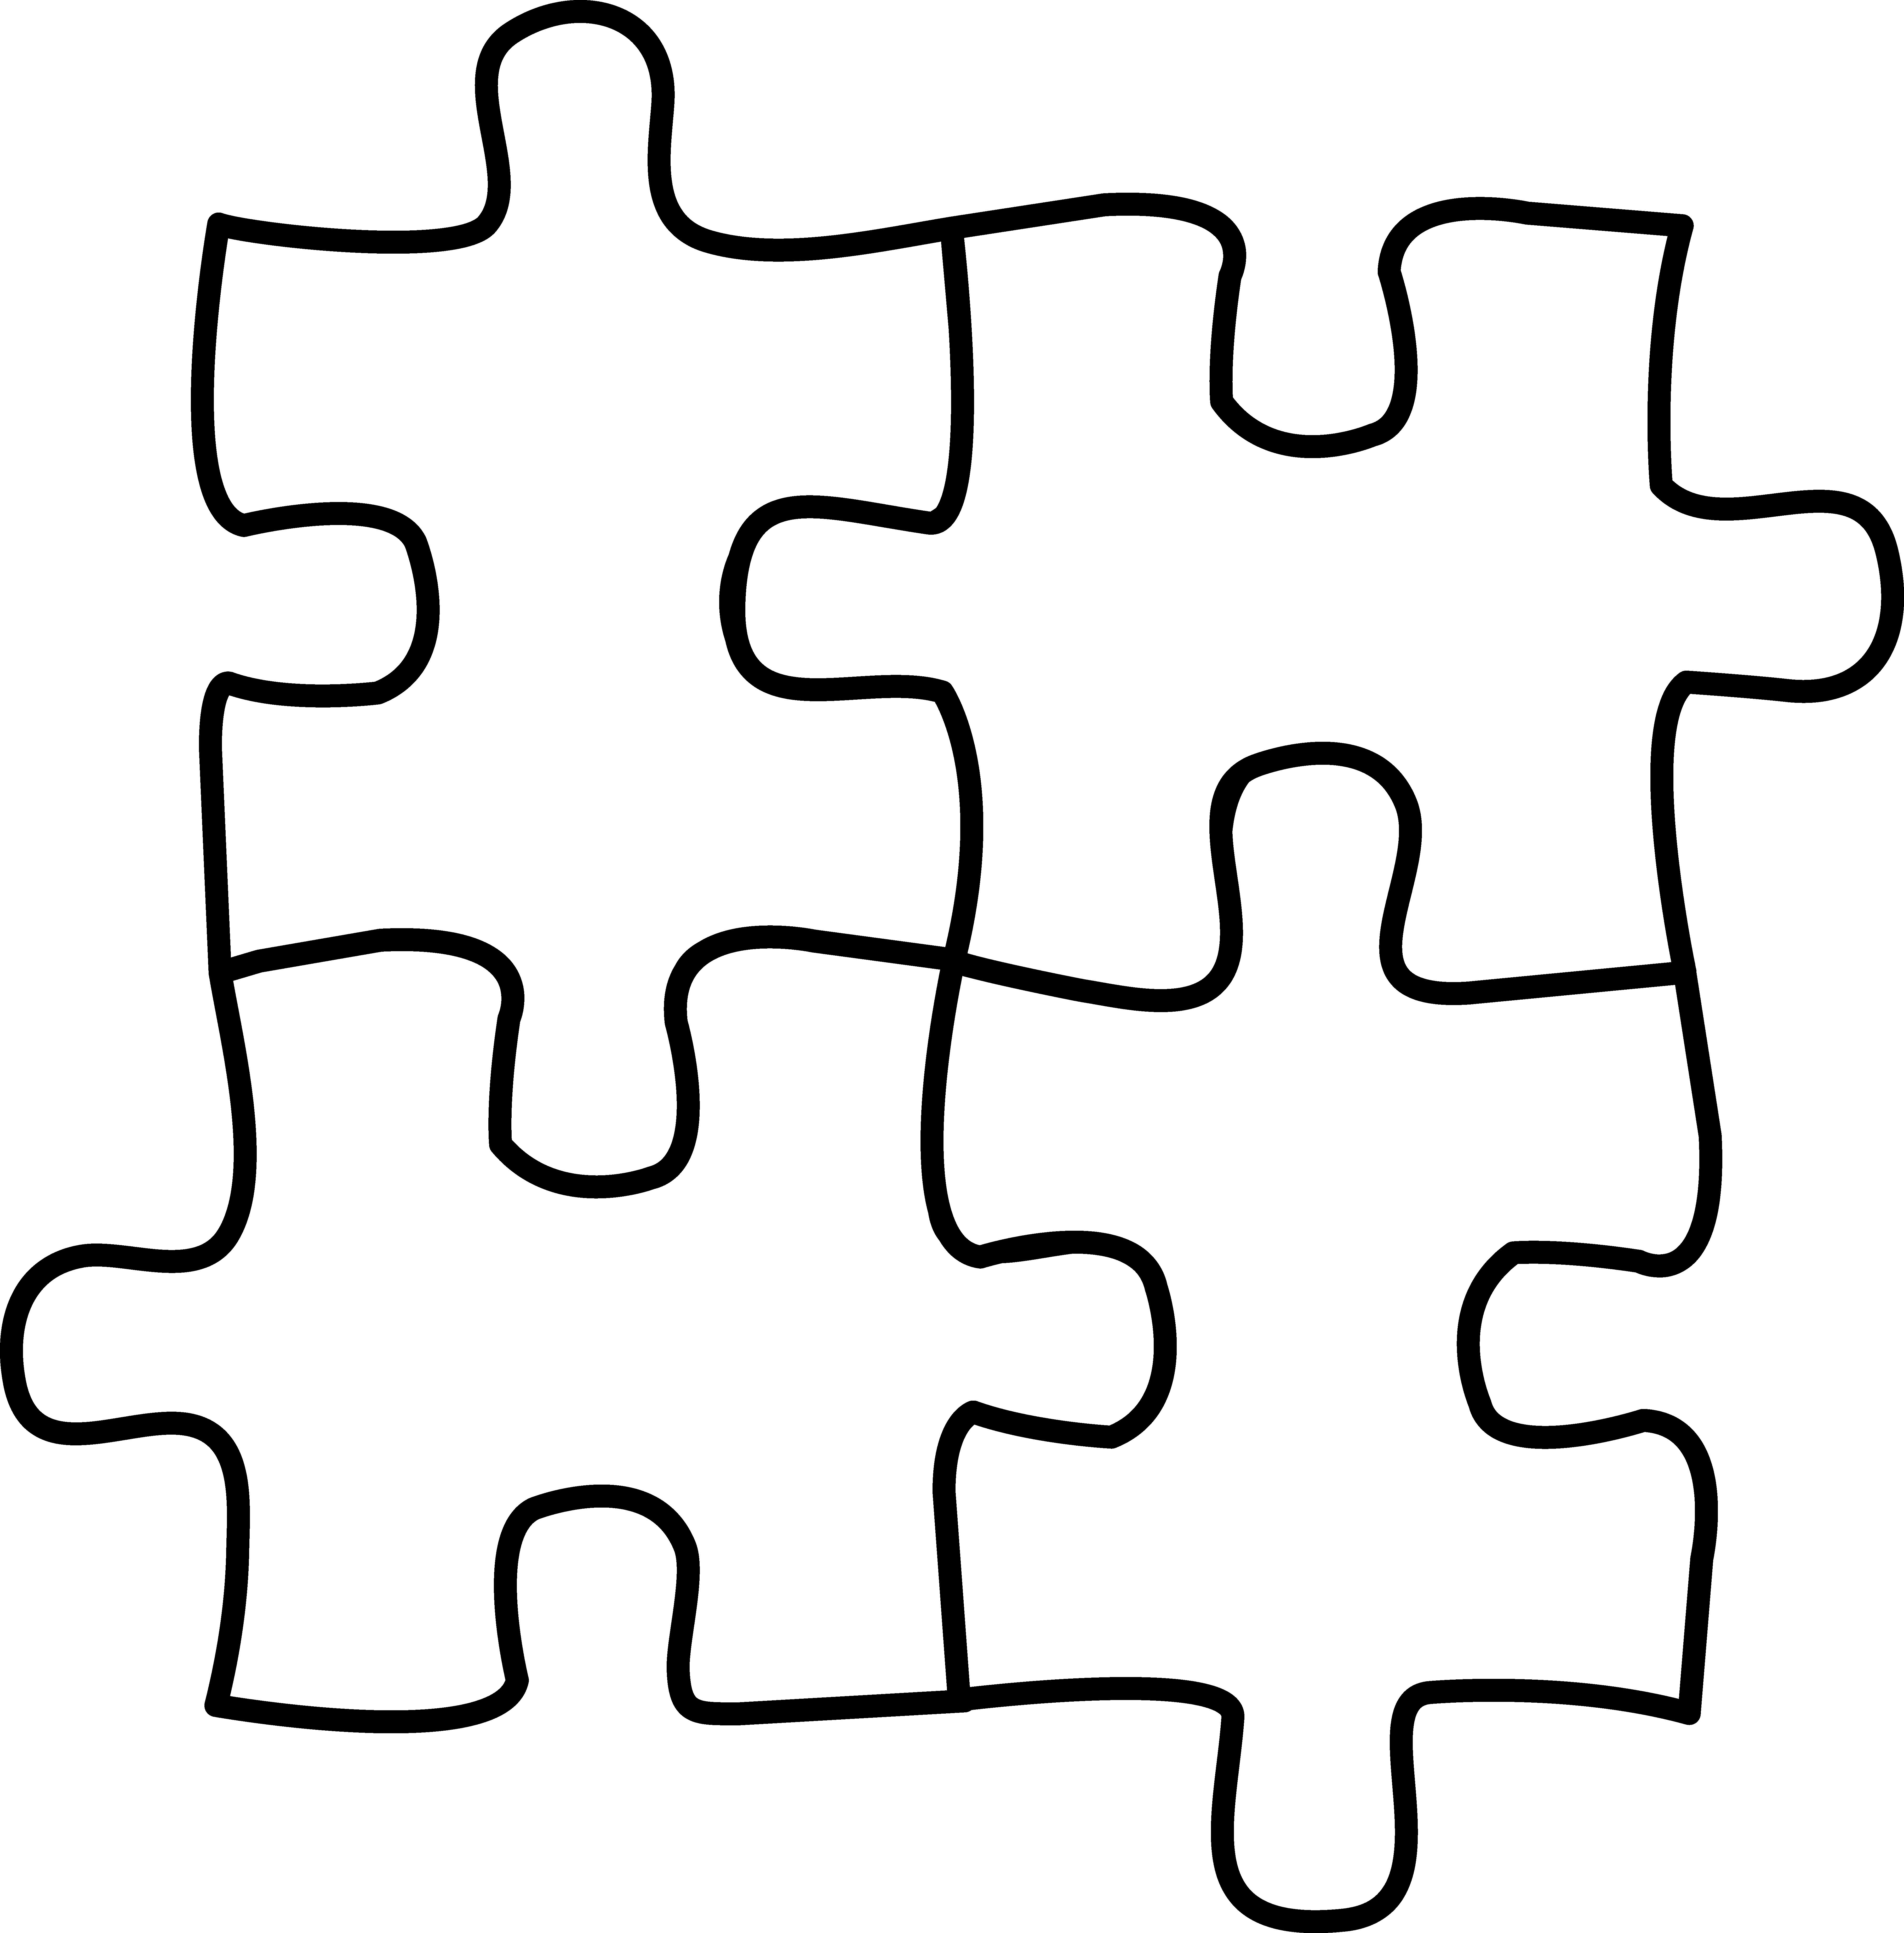 Puzzle vector png. Collection of free